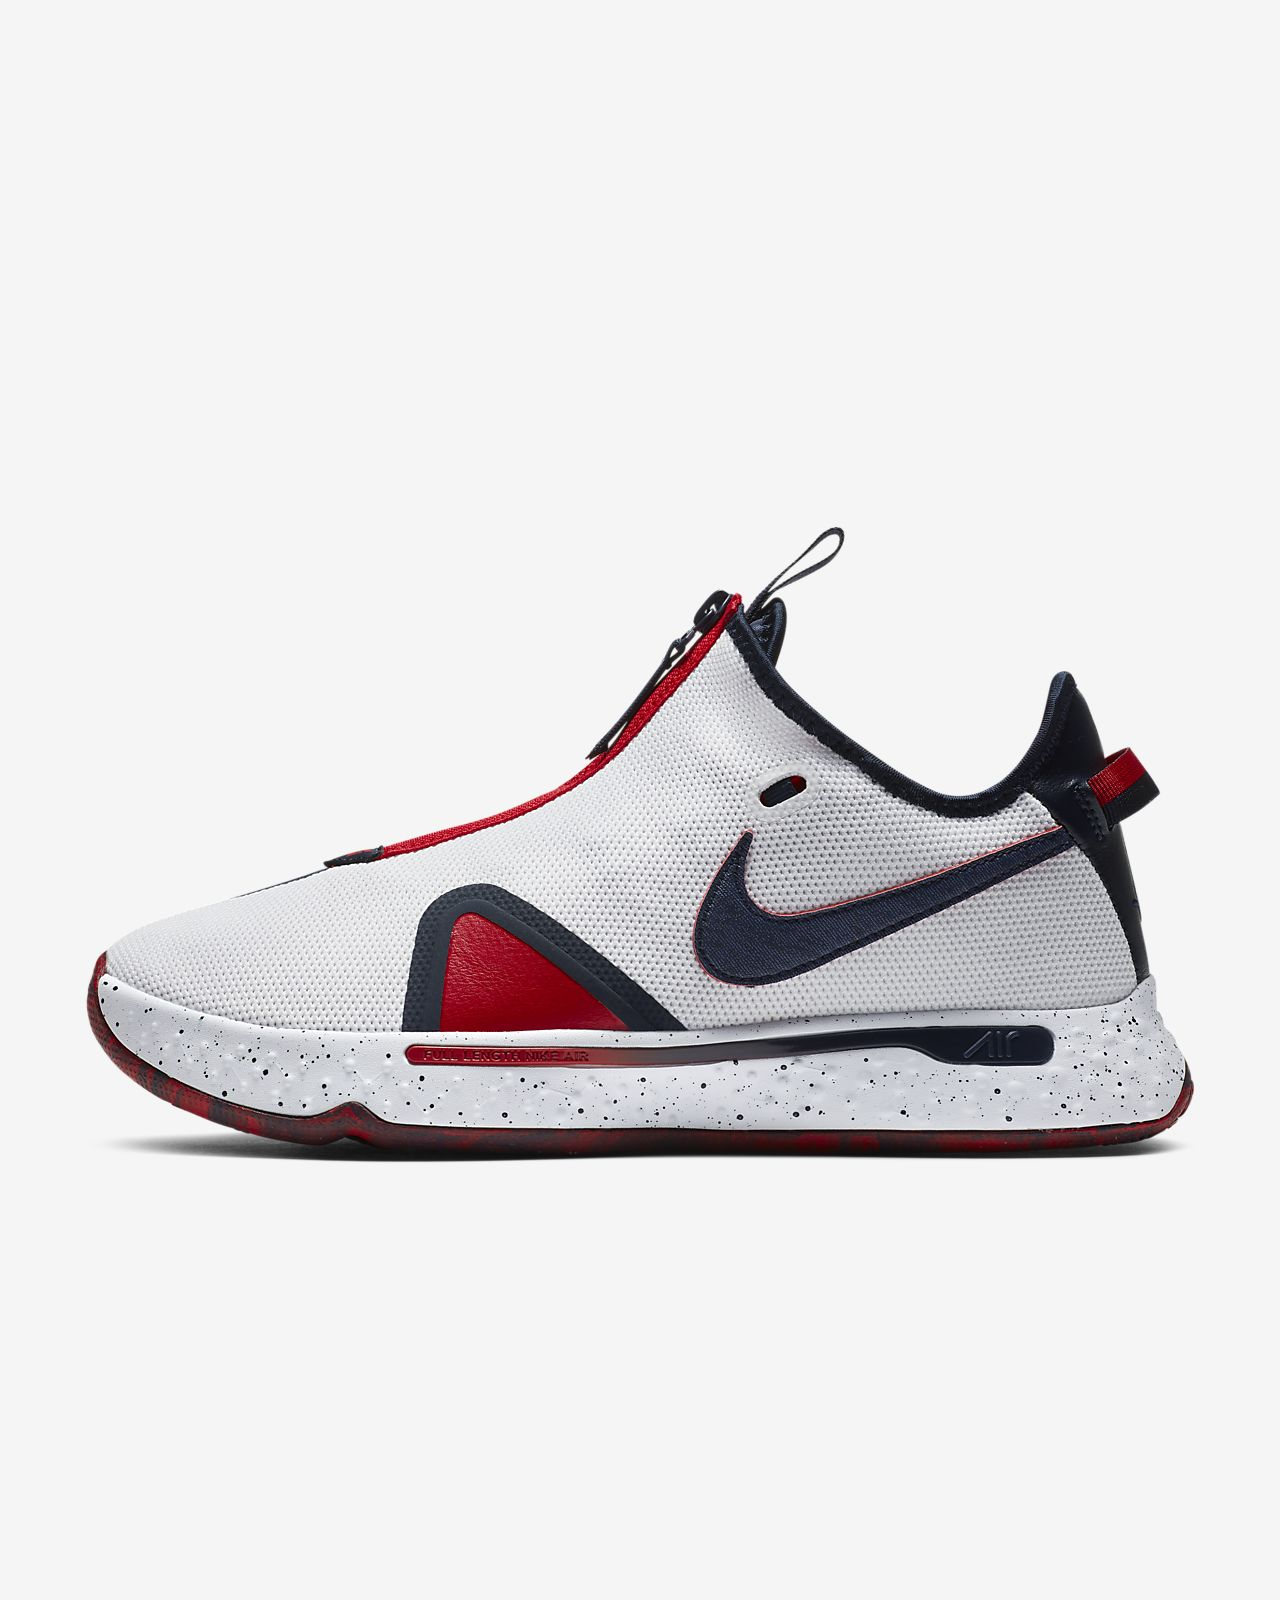 PG 4 EP Basketball Shoe